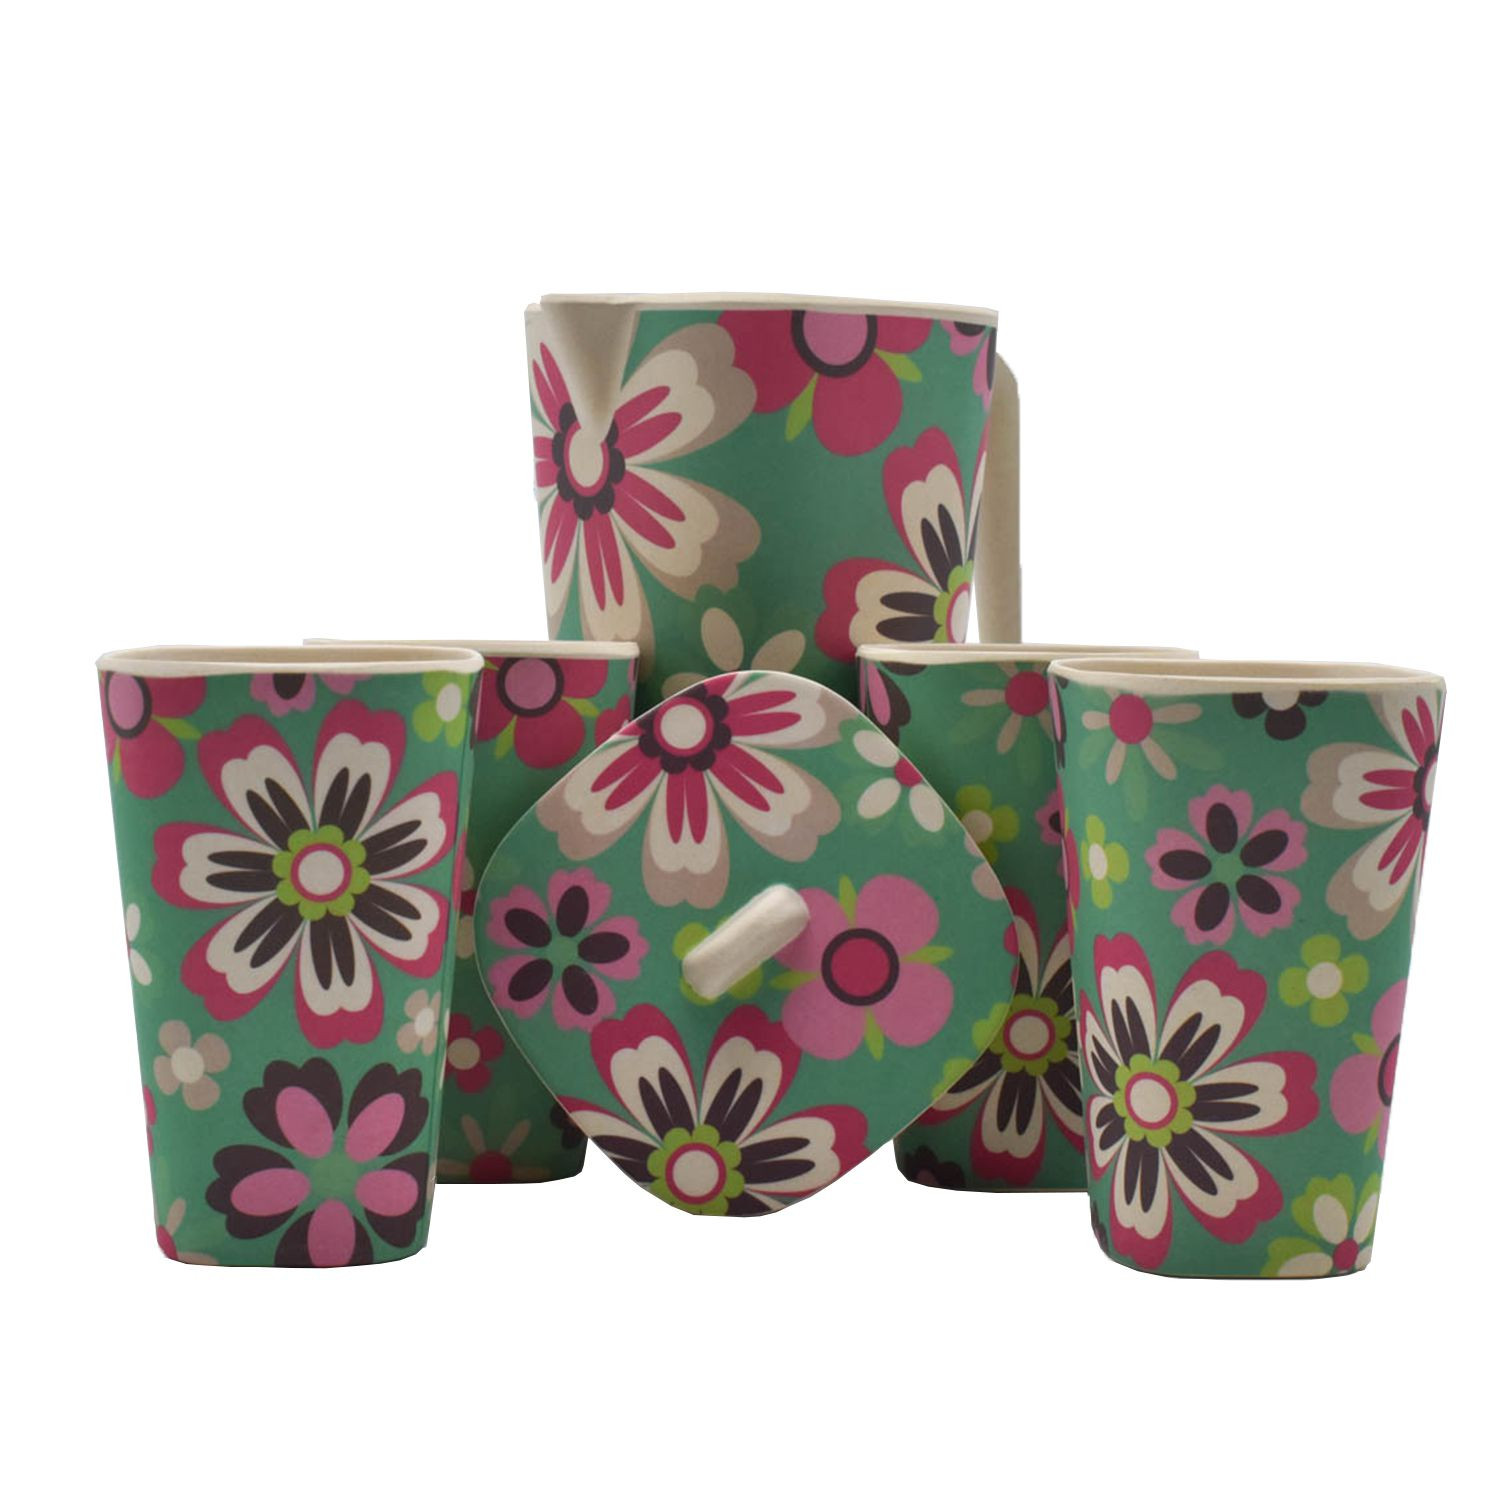 Flower Delivery Inspirational Shopnjazz Ceramic Pitchers 1250 Ml Buy Line at Best Price In